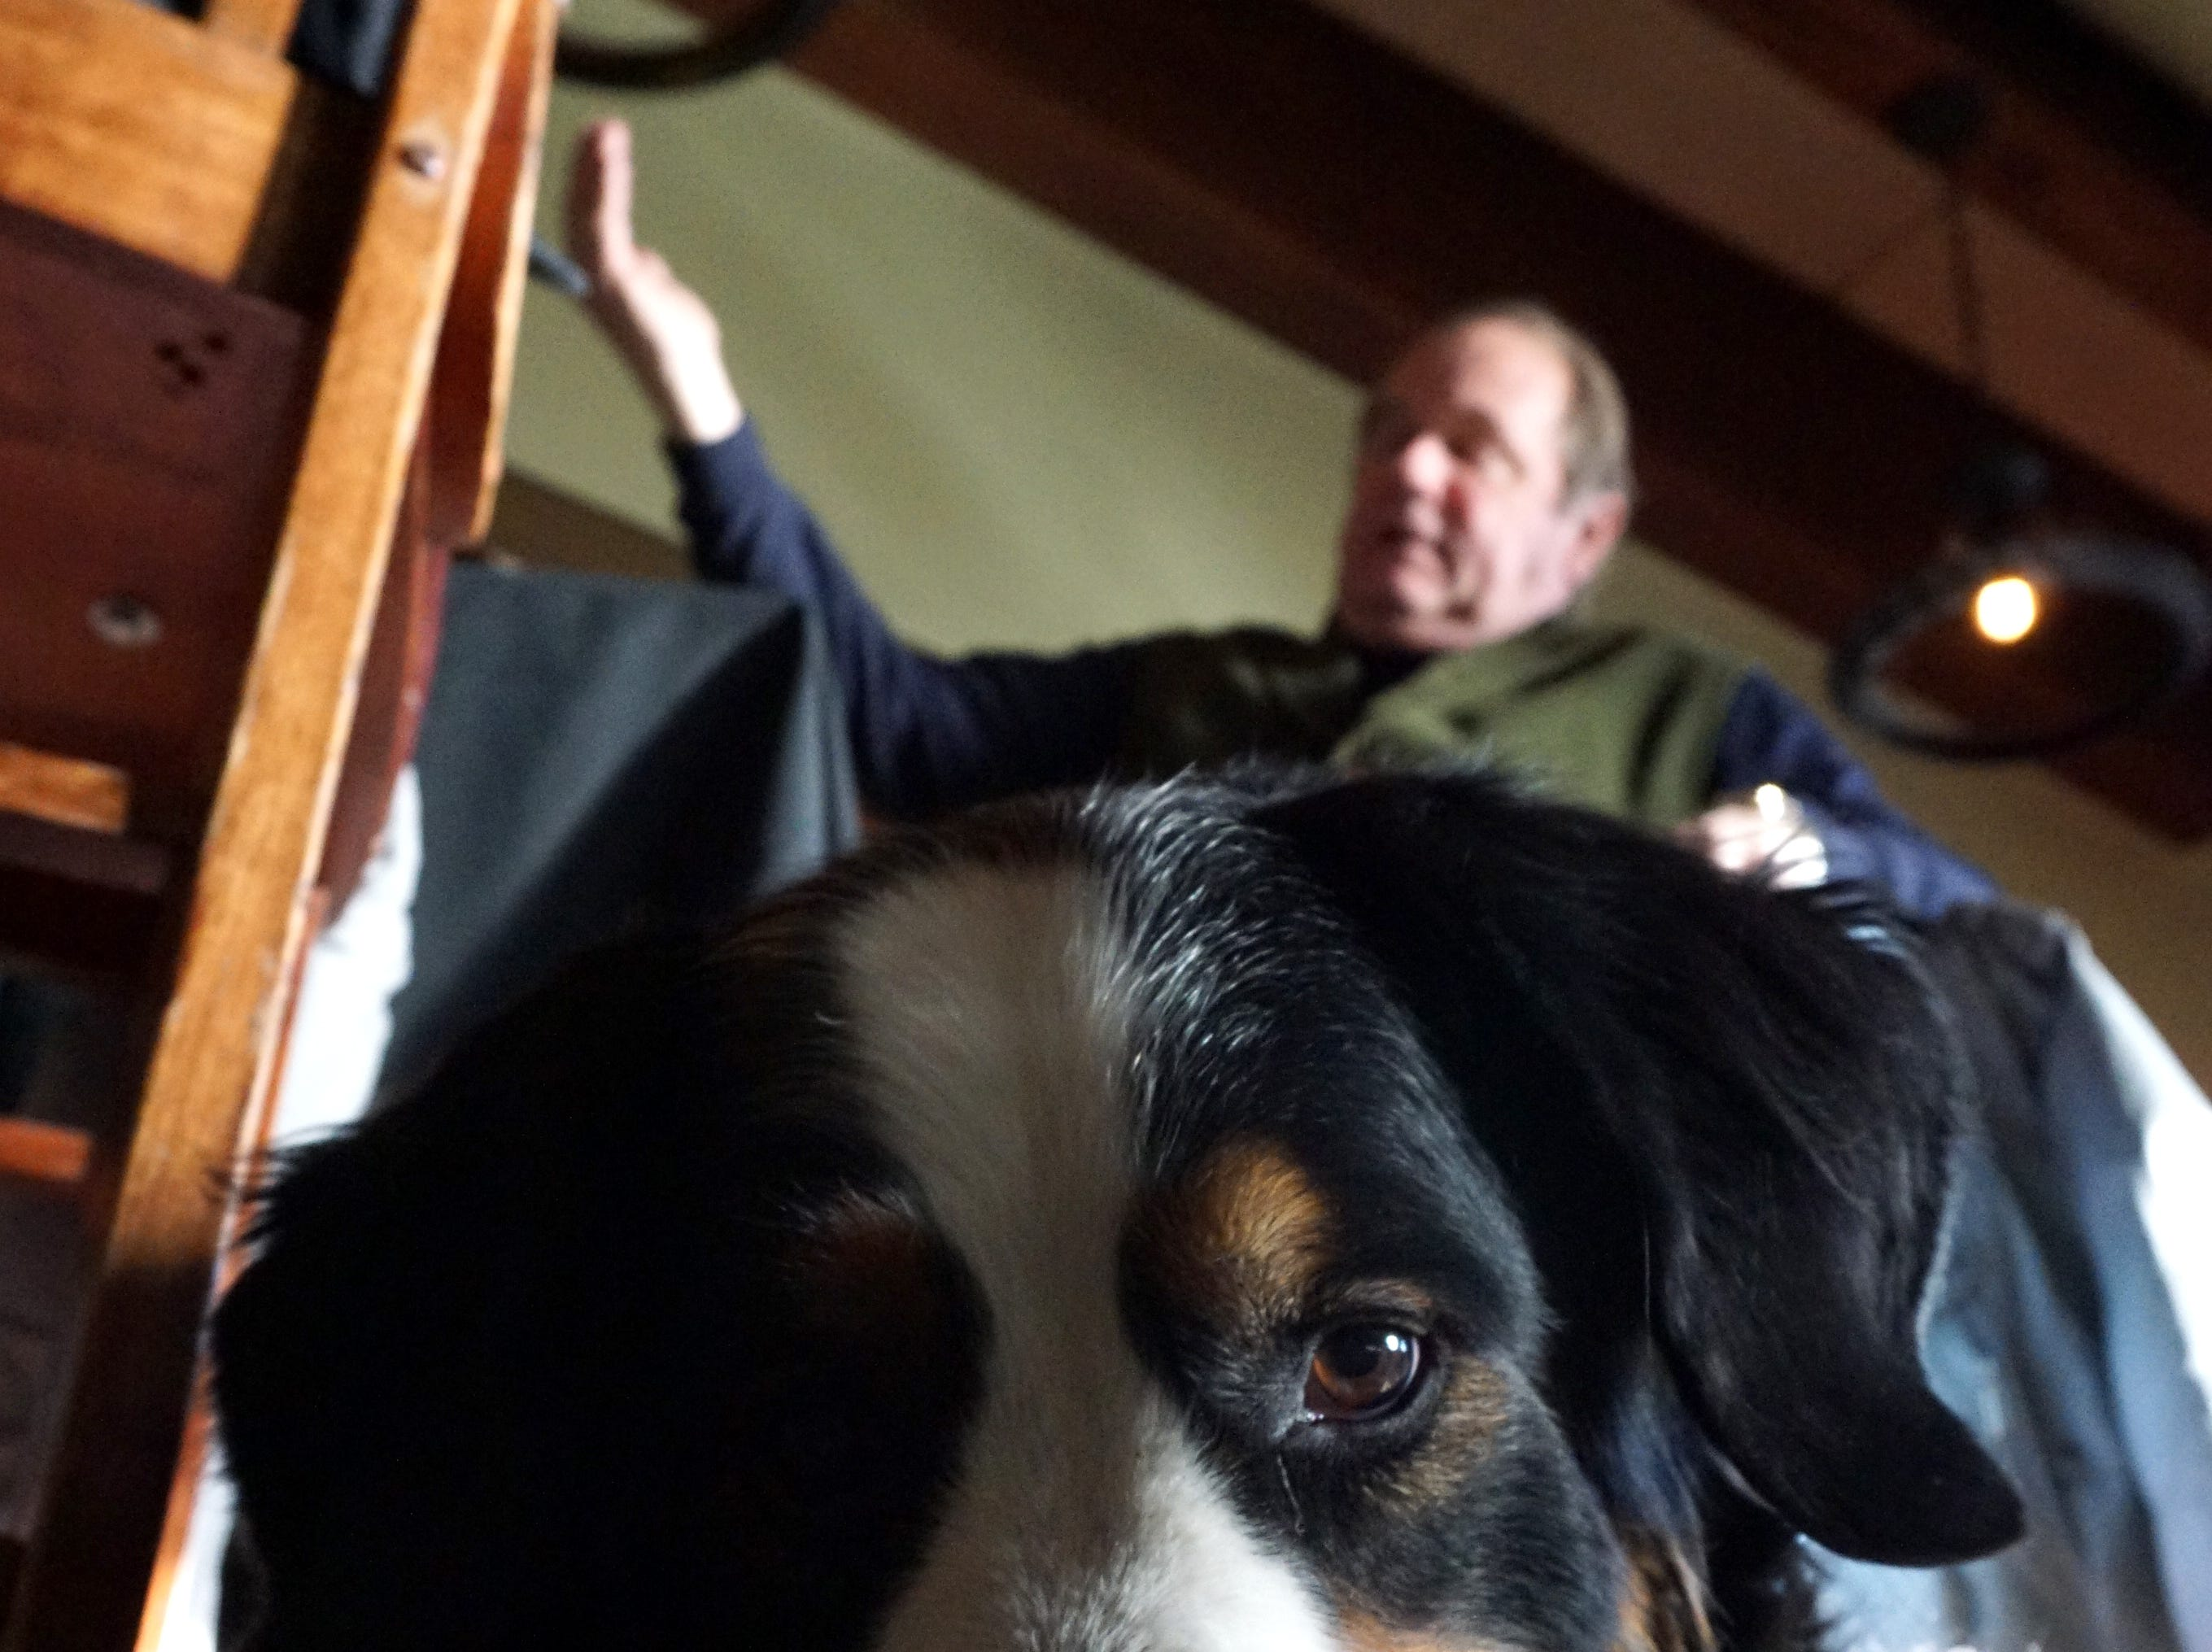 Stella's Trackside in Plymouth's owner Bob Ostendorf talks about changes to the Starkweather restaurant as its namesake Bernese Mountain dog hangs out near his feet.